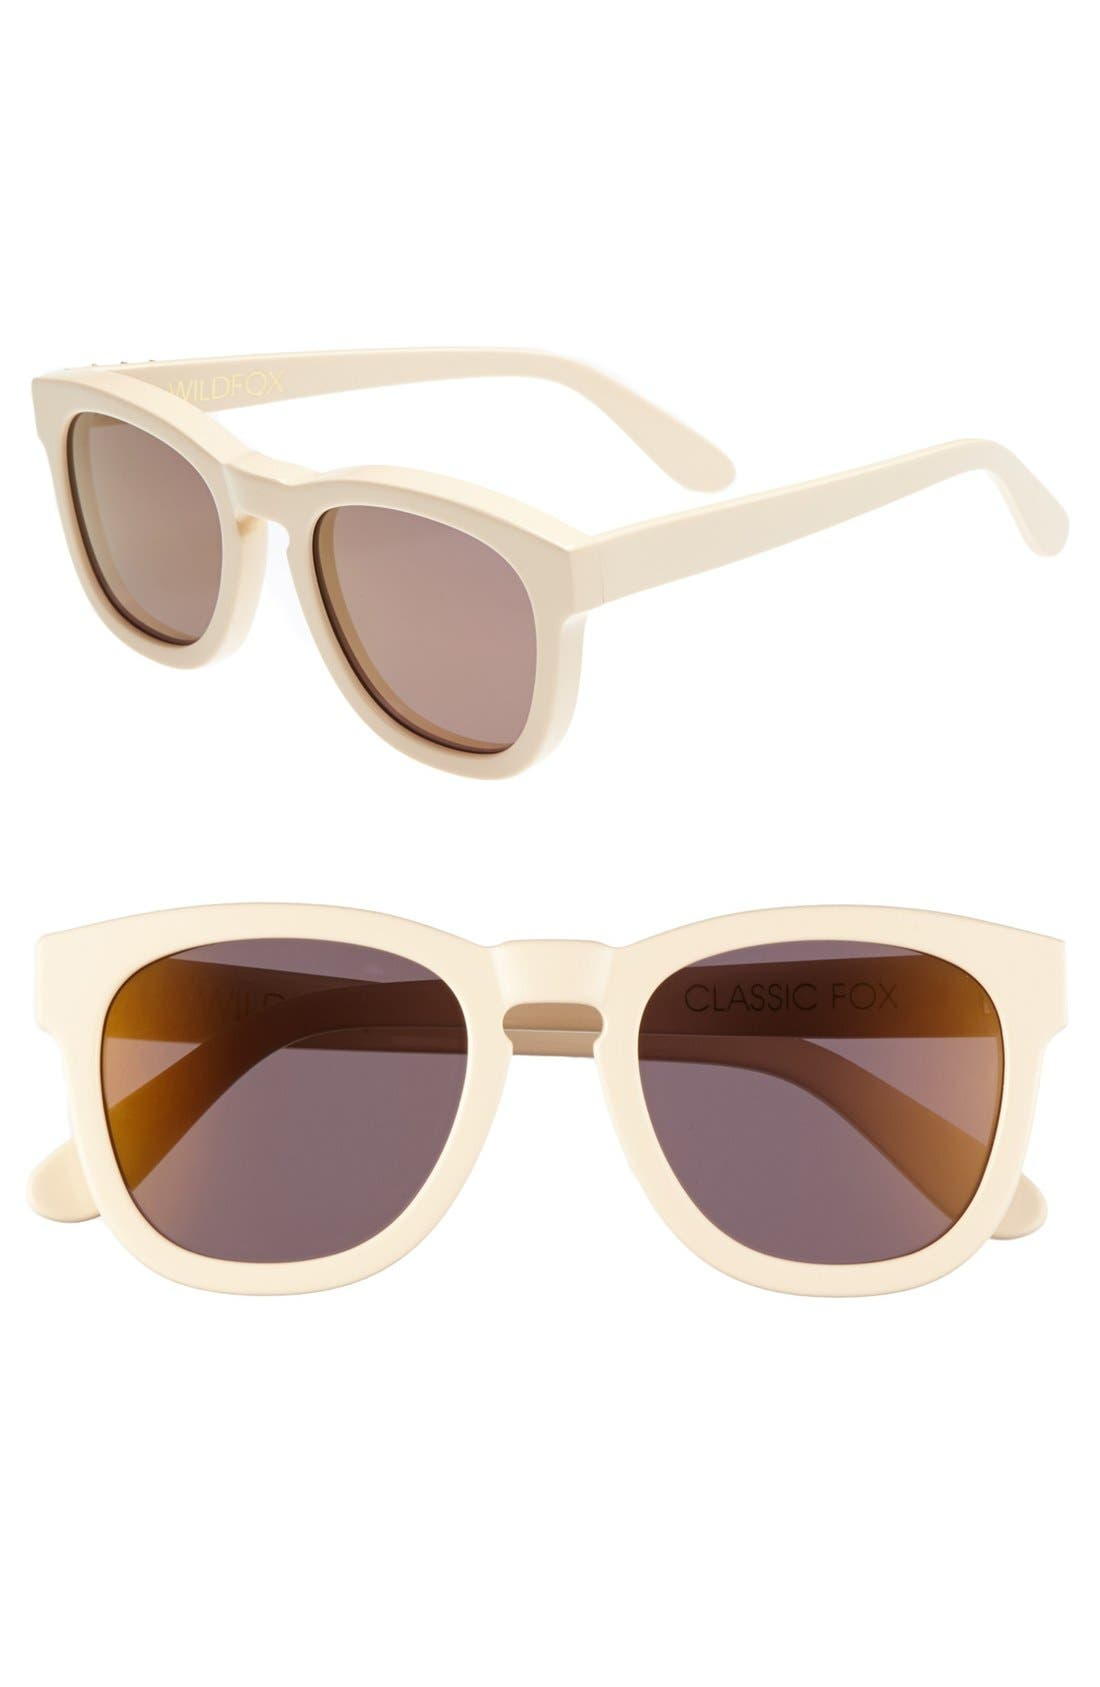 Alternate Image 1 Selected - Wildfox 'Classic Fox - Deluxe' 52mm Sunglasses